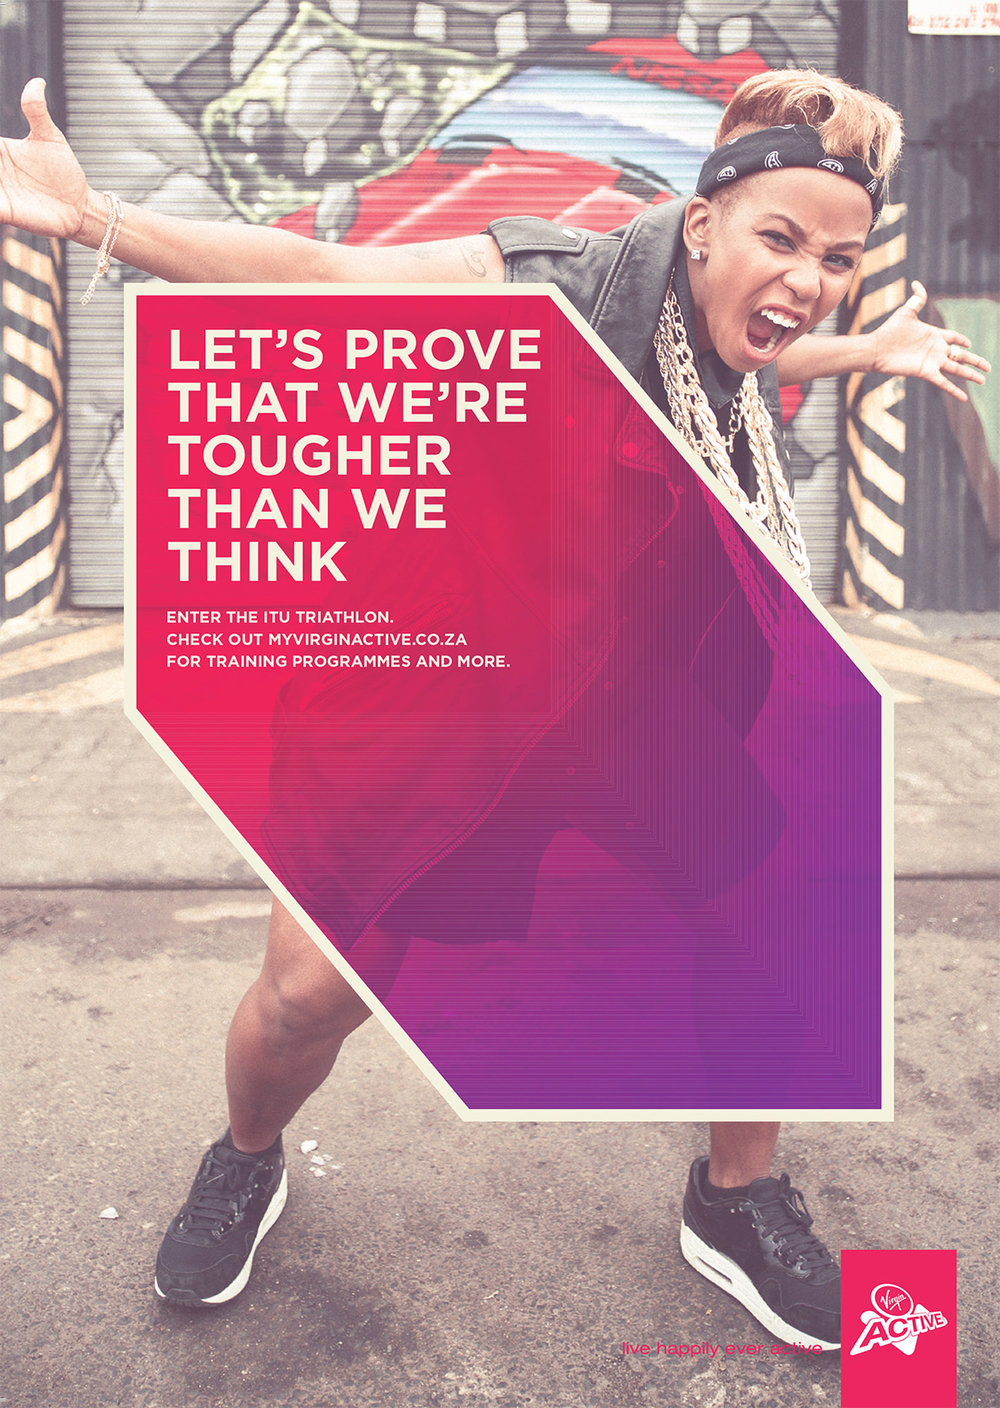 04Advertising Virgin Active 1.jpg